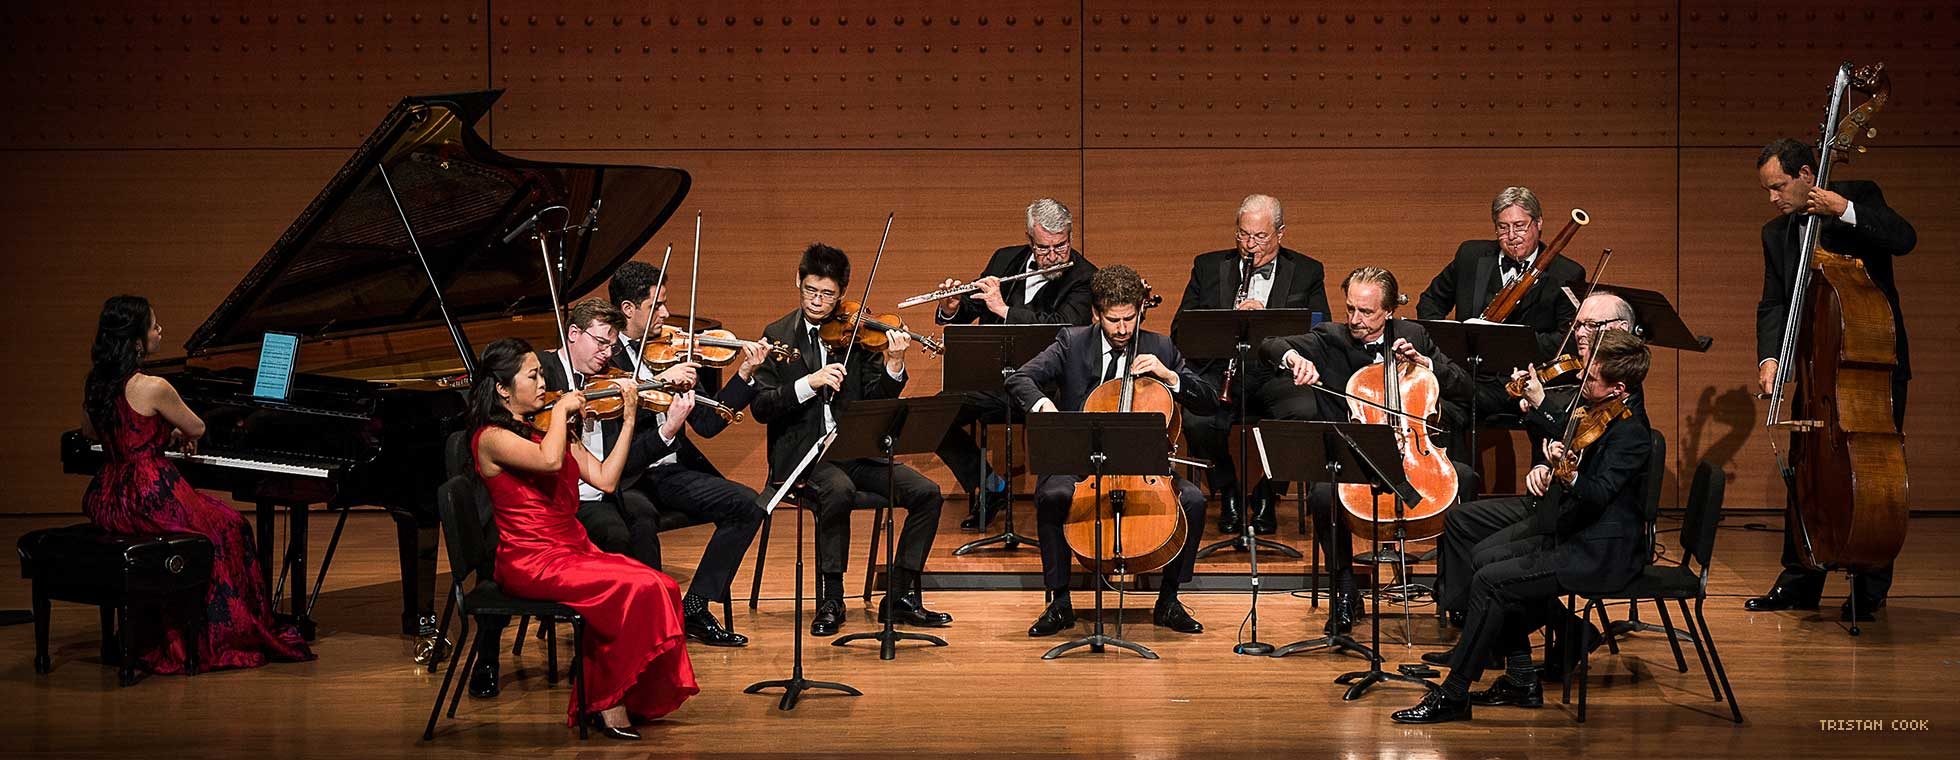 Thirteen musicians in formal clothing perform on stage.